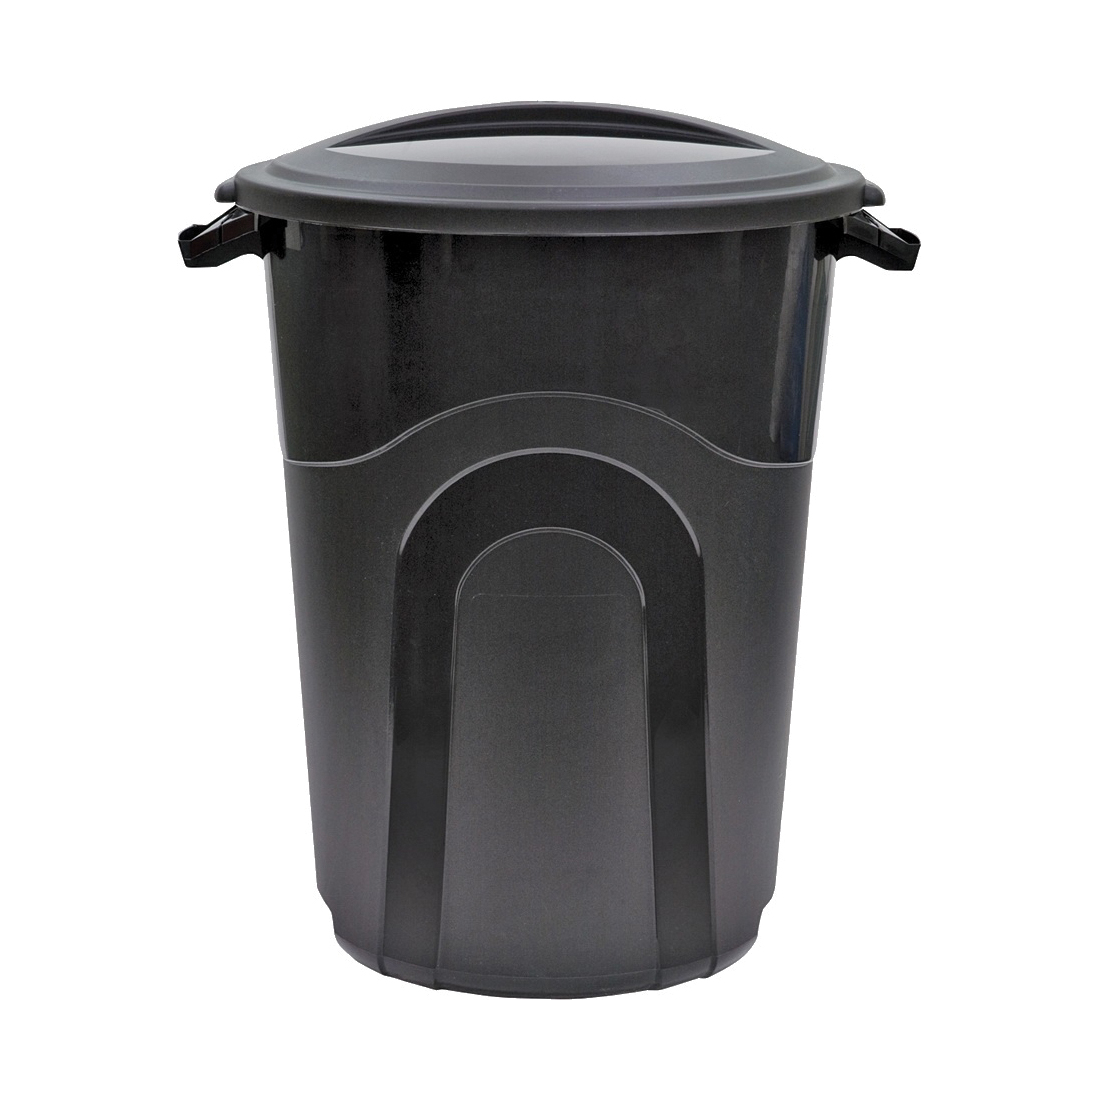 Picture of United Solutions TI0019 Trash Can, 32 gal Capacity, Plastic, Black, Snap-On Lid Closure